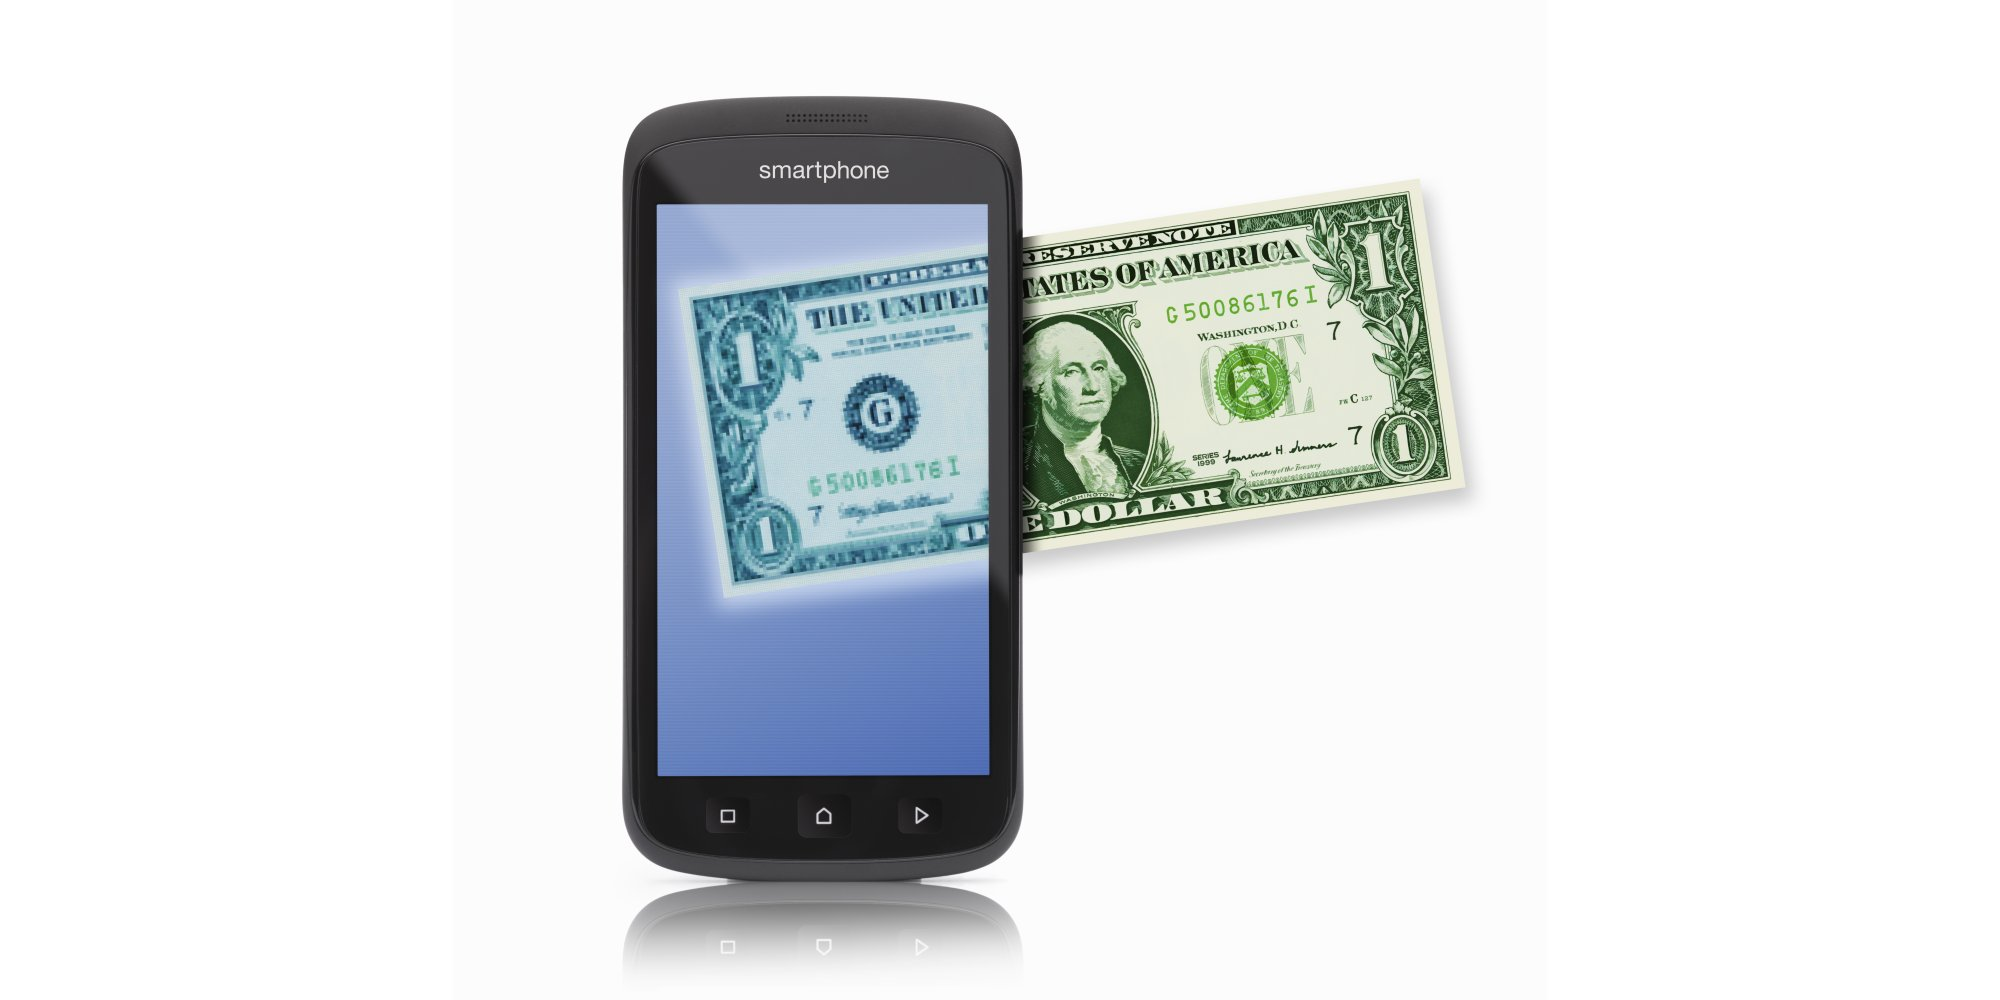 how to add money on phone for inmate